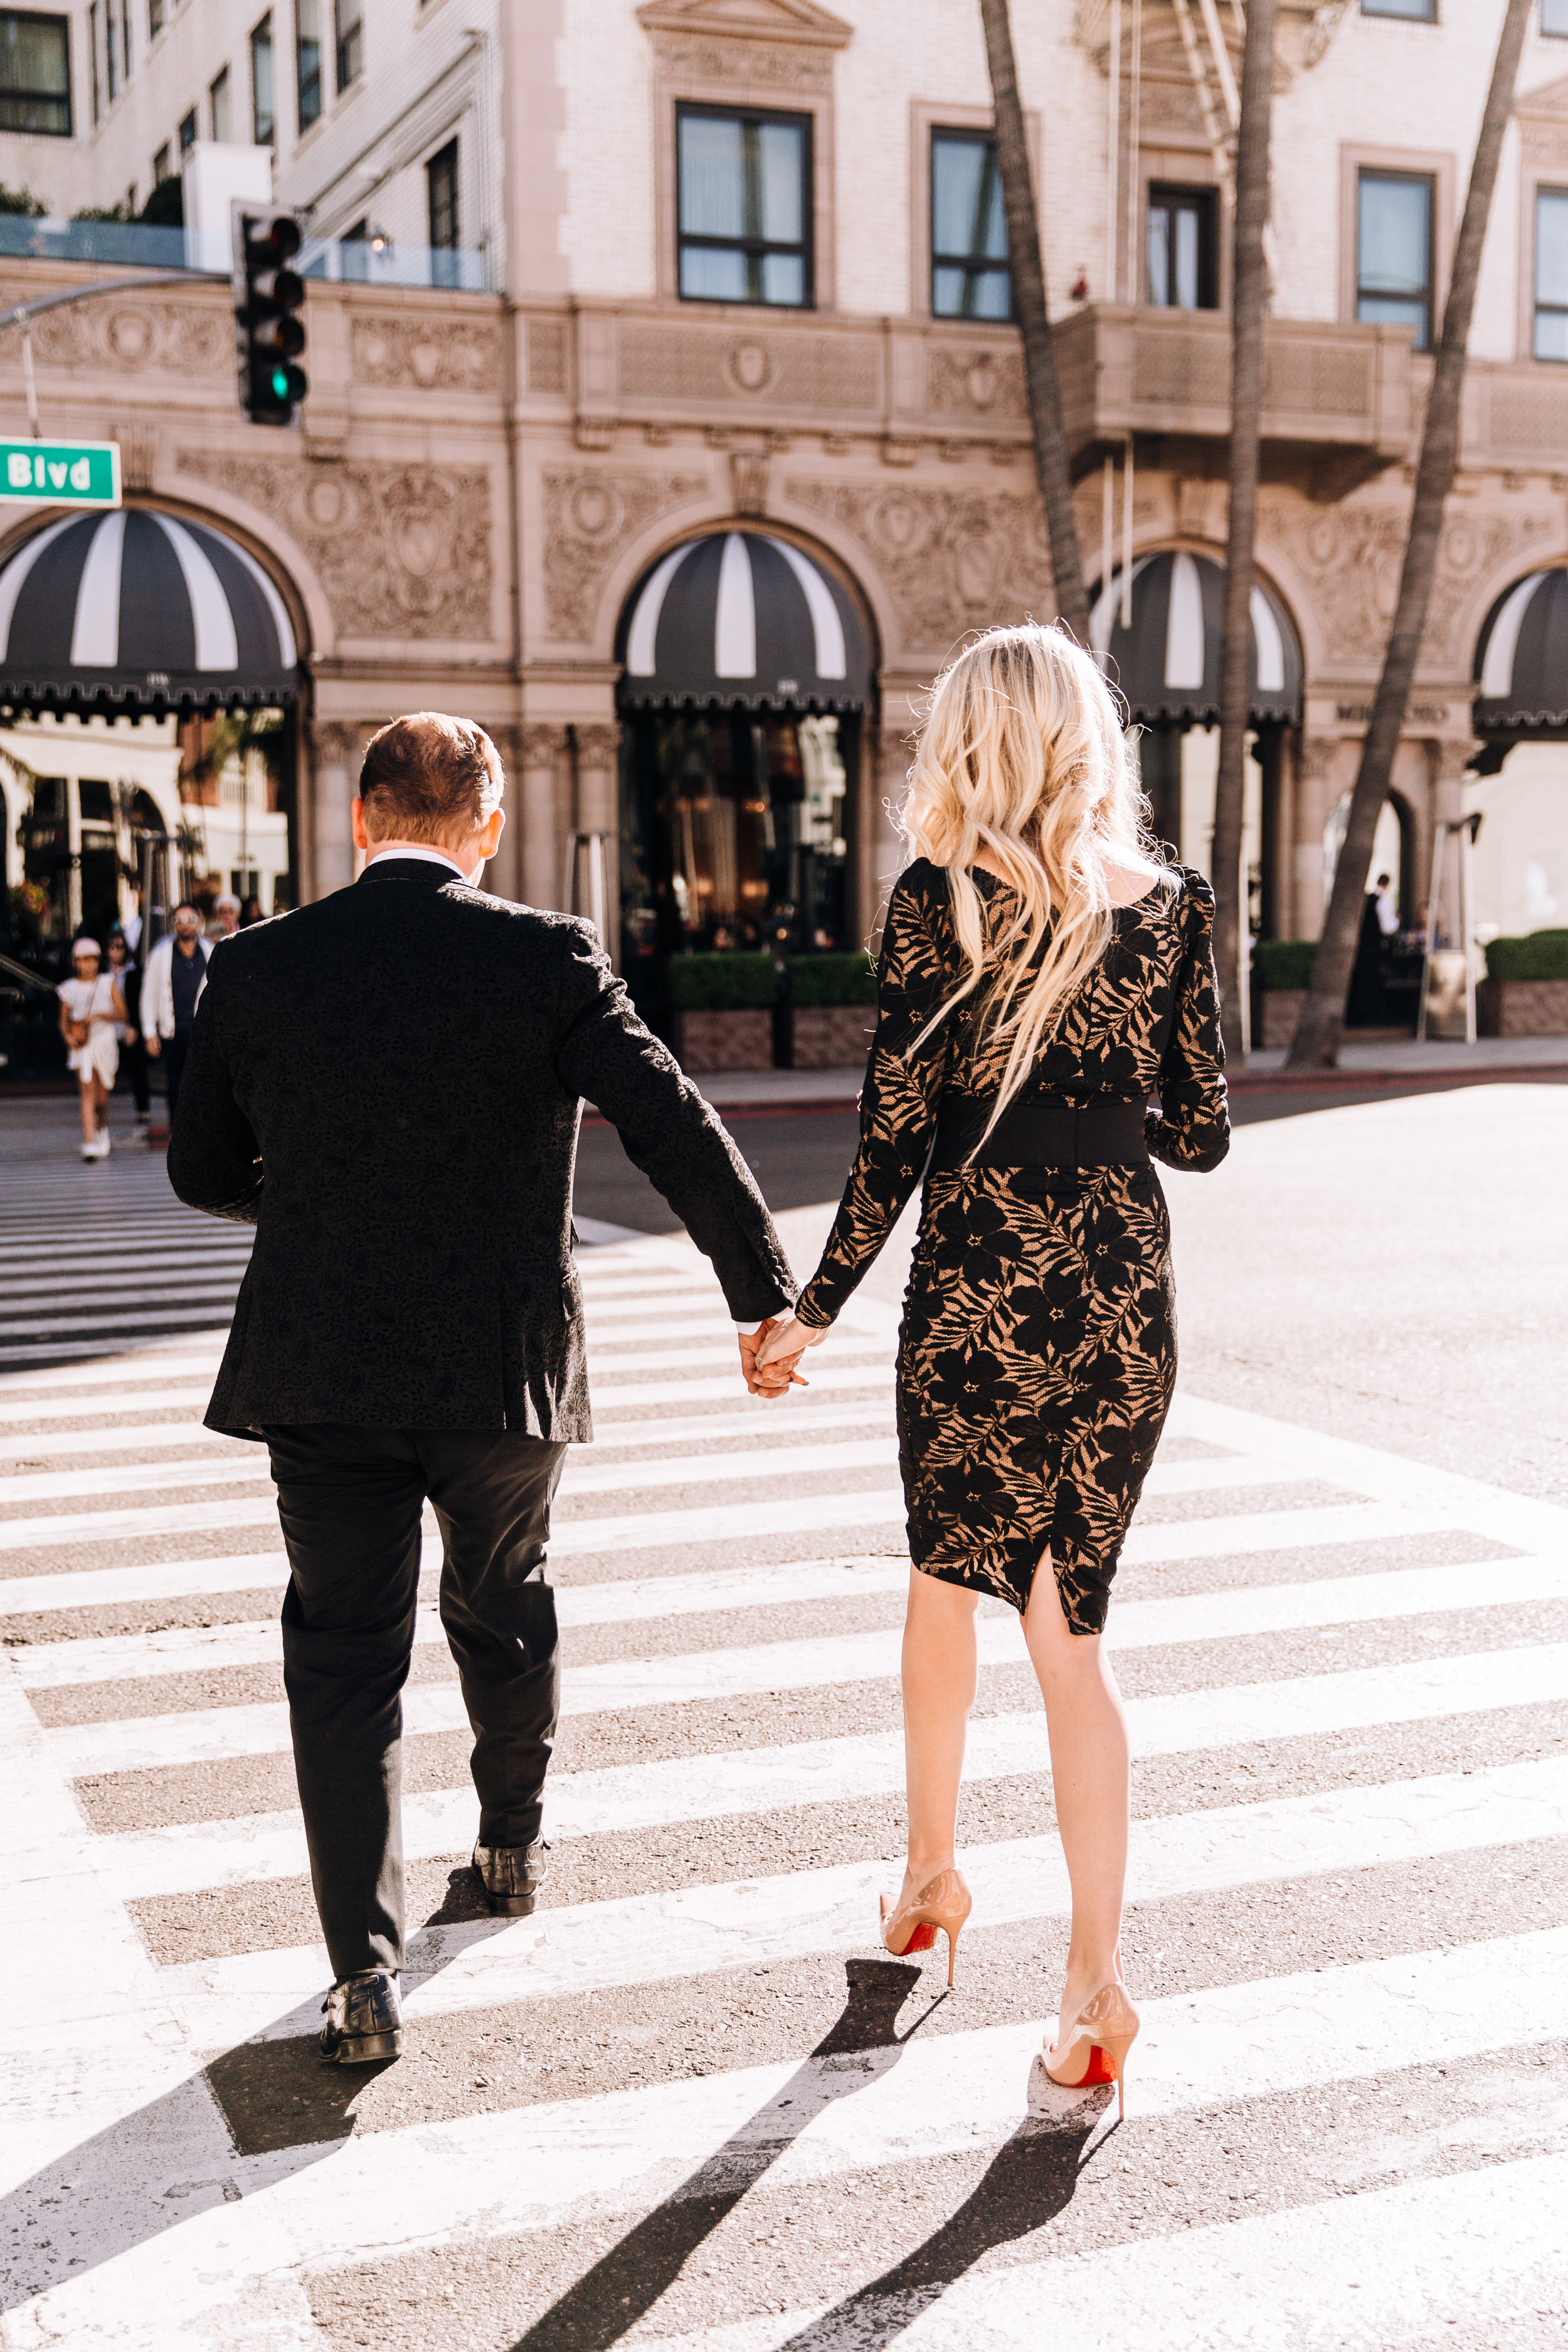 KaraNixonWeddings-BeverlyHills-RodeoDr-Engagement-end.jpg